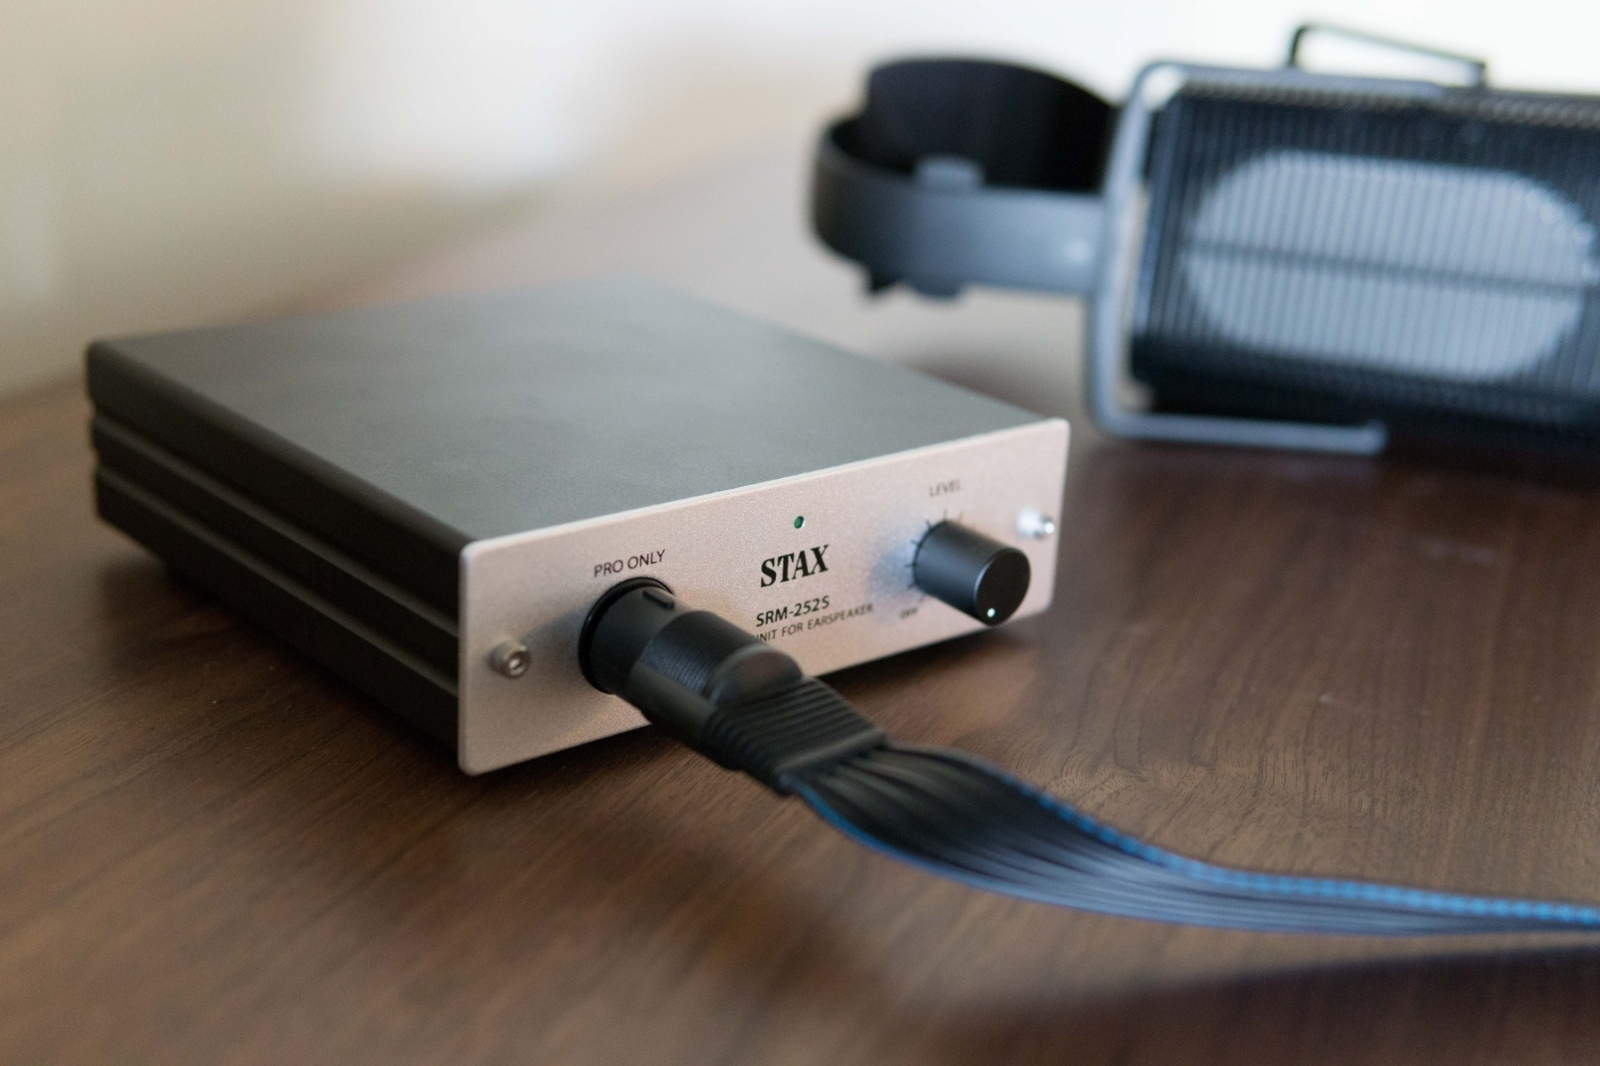 Stax SRS-3100 Review